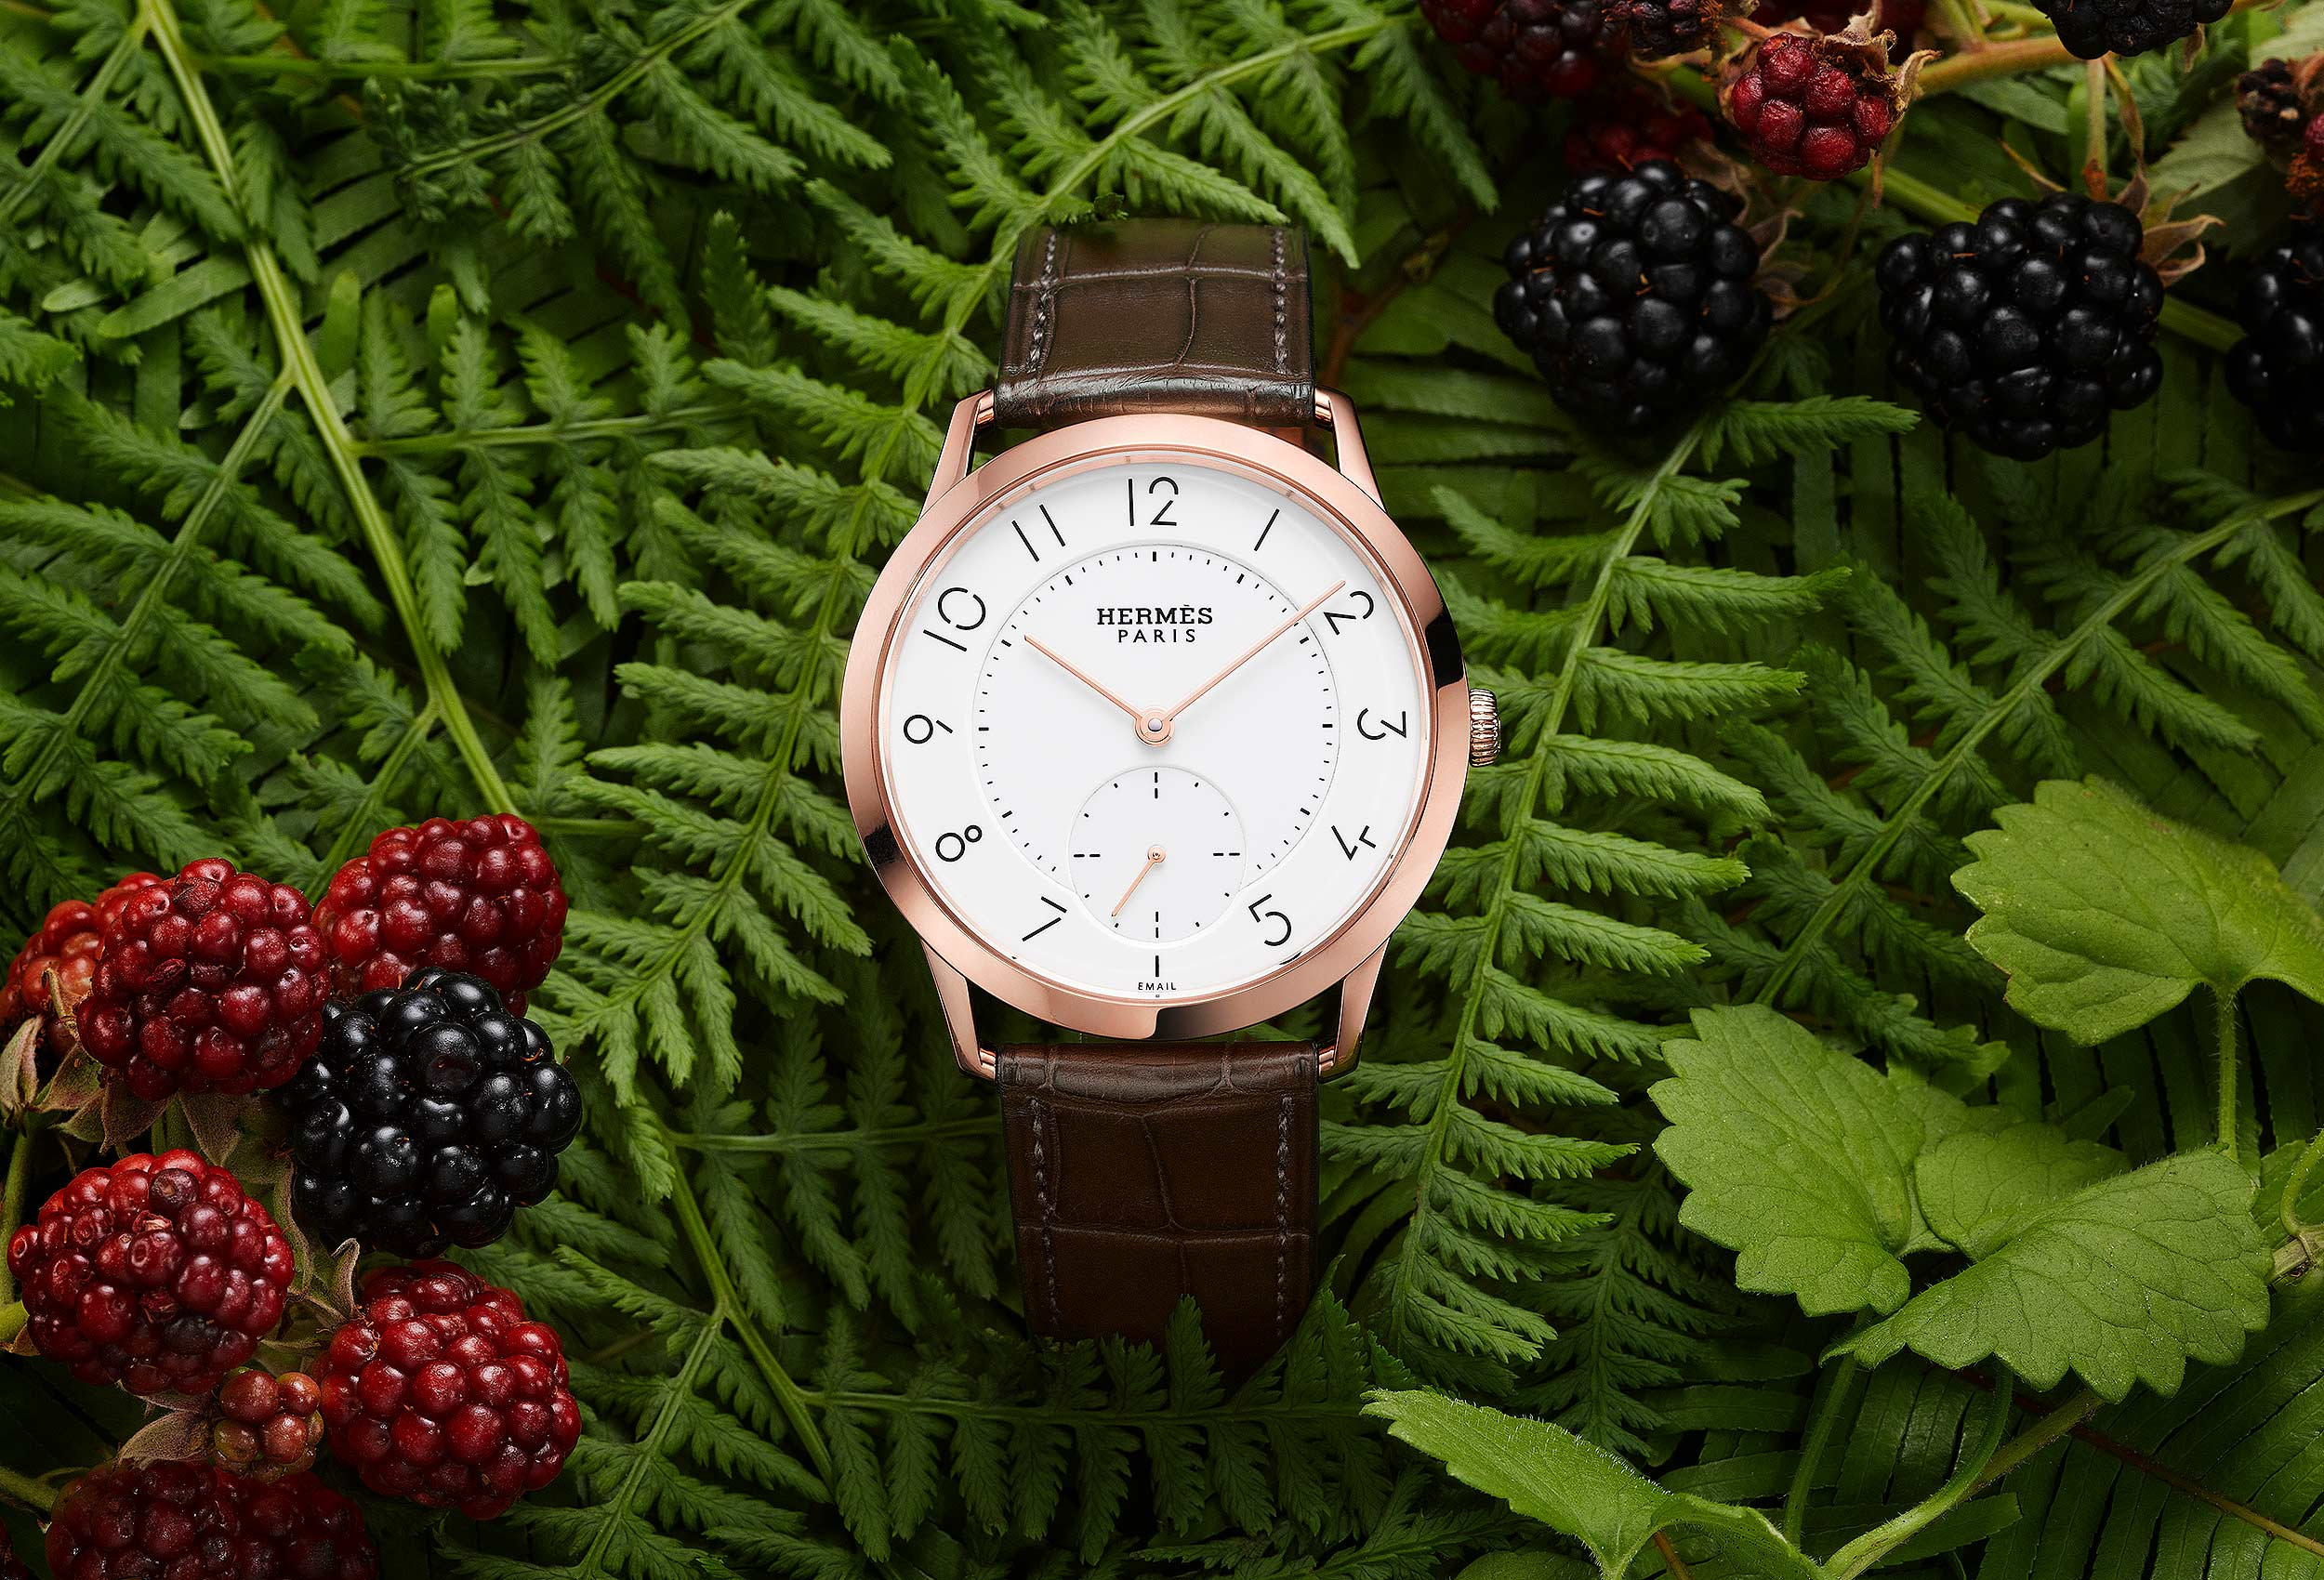 Hermes-Watch-with-Foliage-and-Berries